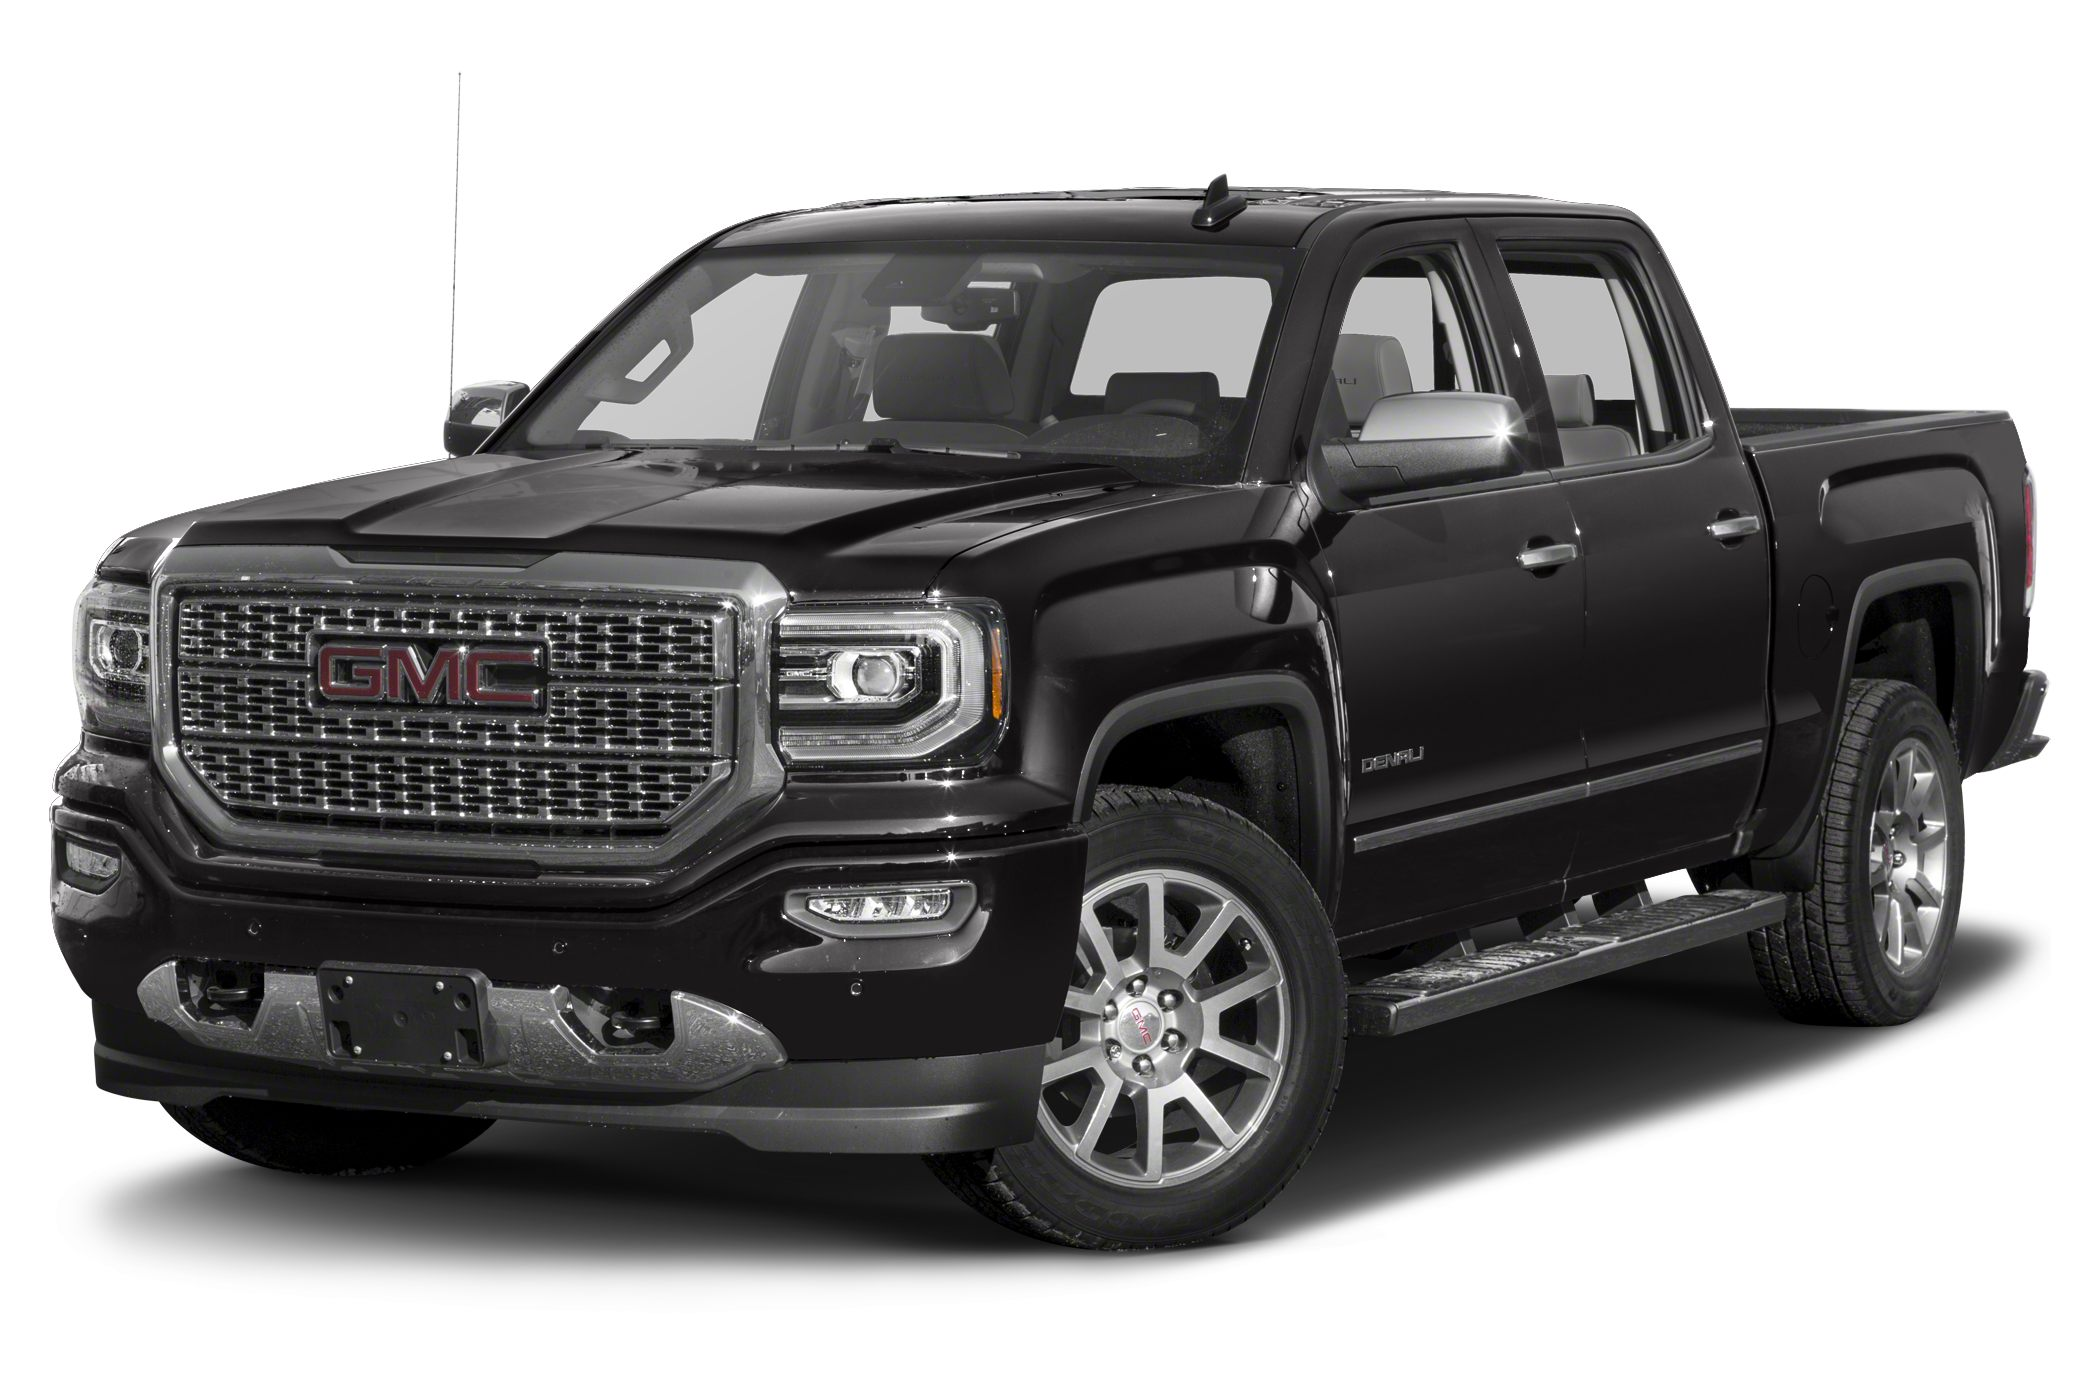 2017 Gmc Sierra 1500 Denali 4x4 Crew Cab 6 6 Ft Box 153 In Wb For Sale